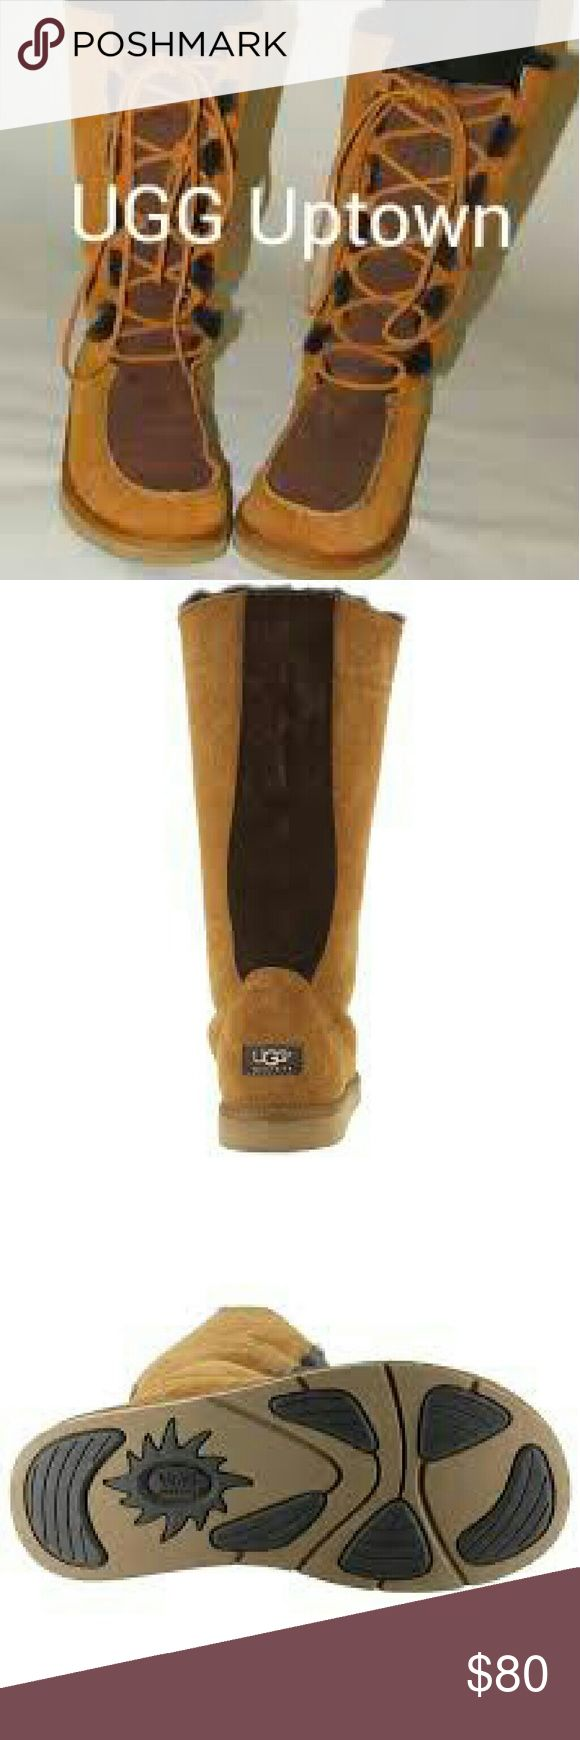 UGG Uptown Size 8, 💯%Authenticatic UGG Uptown boots , Australia Lace up midcalf, Suede sheepskin shearling, warm, comfortable, slight water stain on left as shown in pic # 4, otherwise in excellent condition. UGG Shoes Lace Up Boots